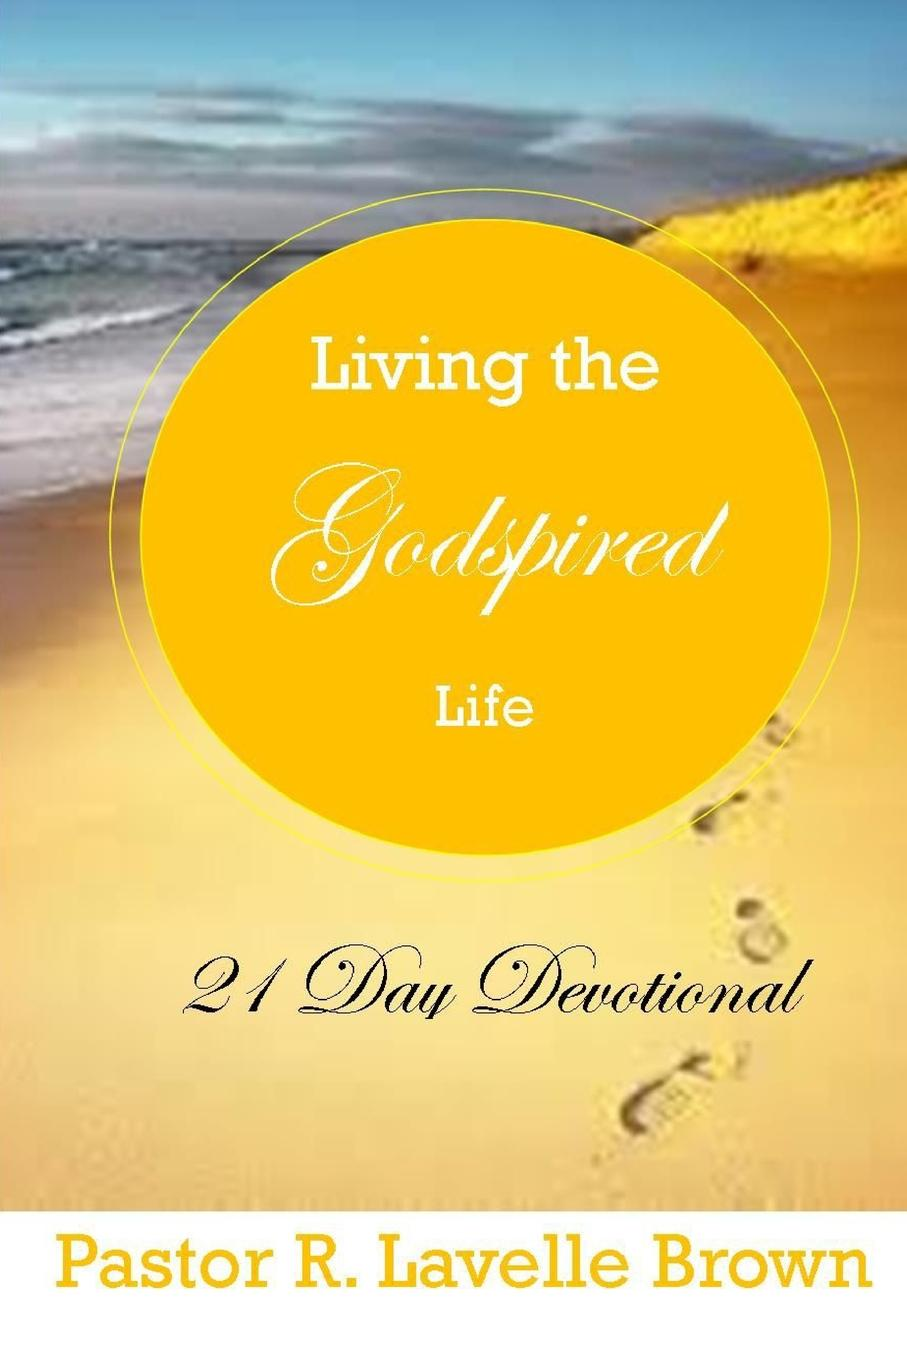 Pastor R. Lavelle Brown Living The Godspired Life 21 Day Devotional the monocle guide to better living